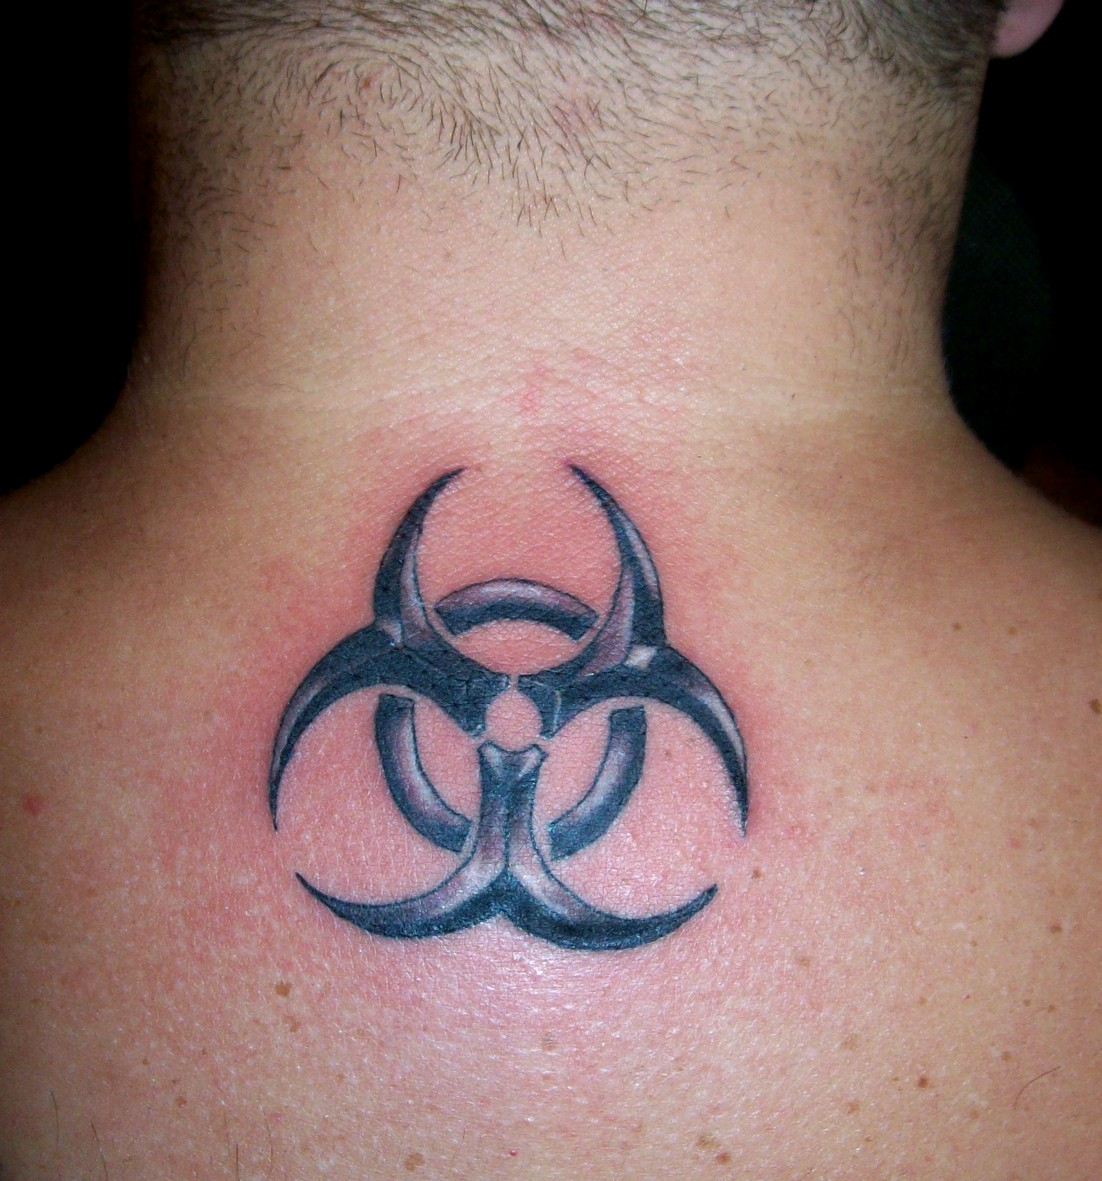 biohazard tattoos designs ideas and meaning tattoos for you